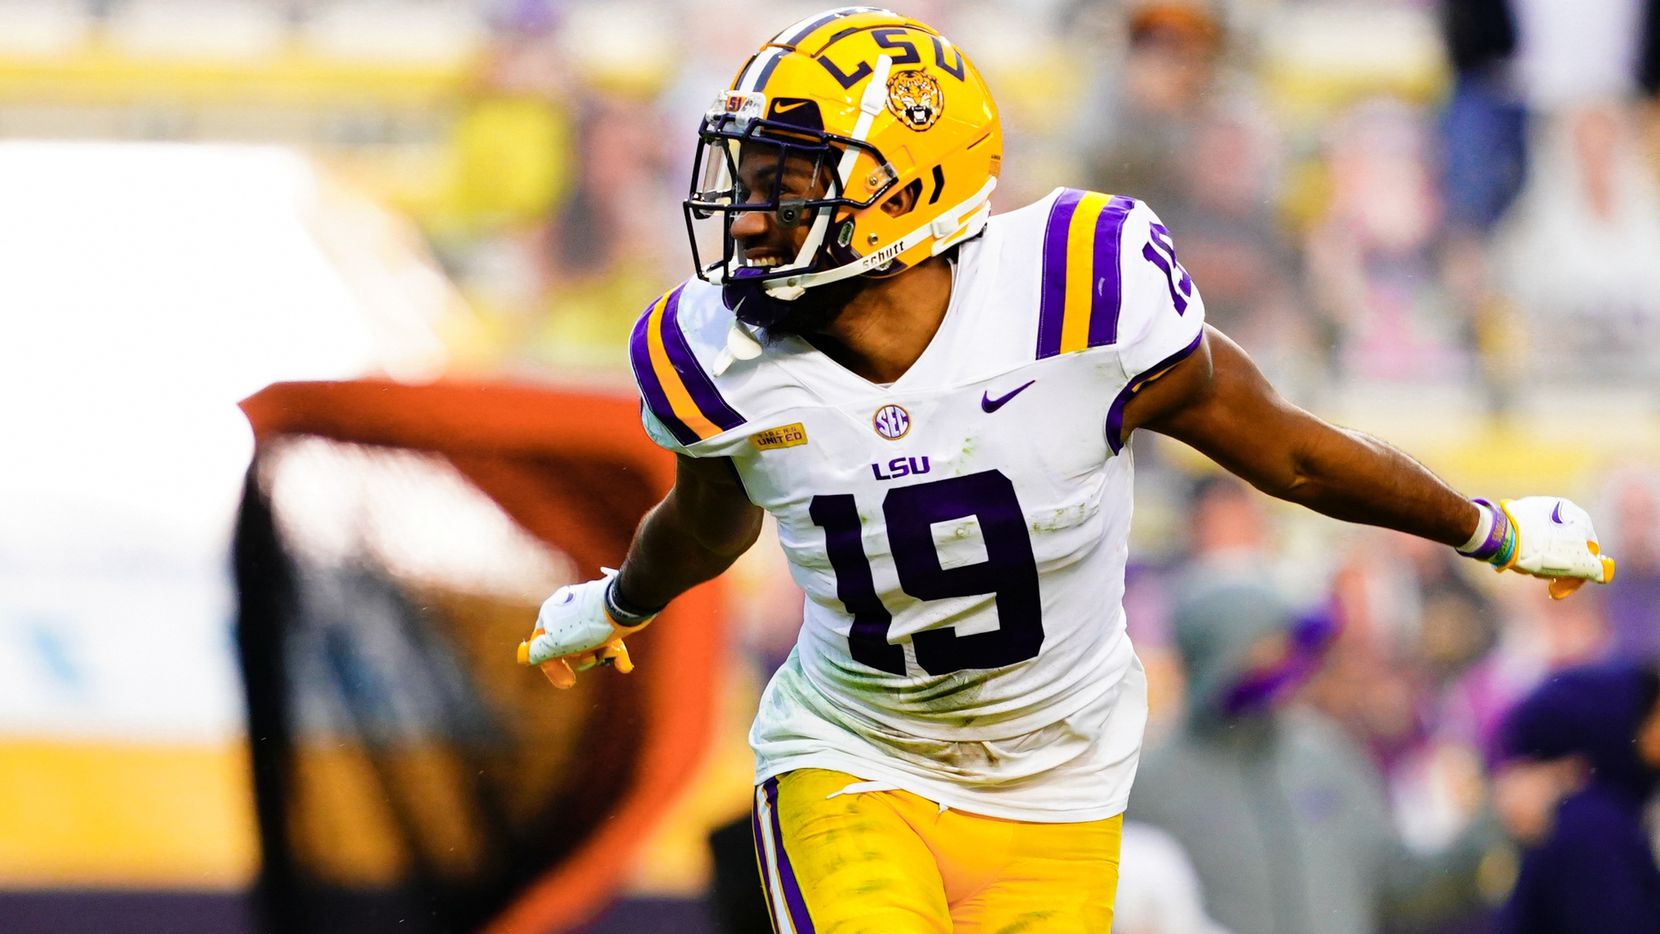 BATON ROUGE, LA - DECEMBER 19: Jabril Cox #19 of the LSU Tigers reacts after a play against the Ole Miss Rebels at Tiger Stadium on December 19, 2020 in Baton Rouge, Louisiana.